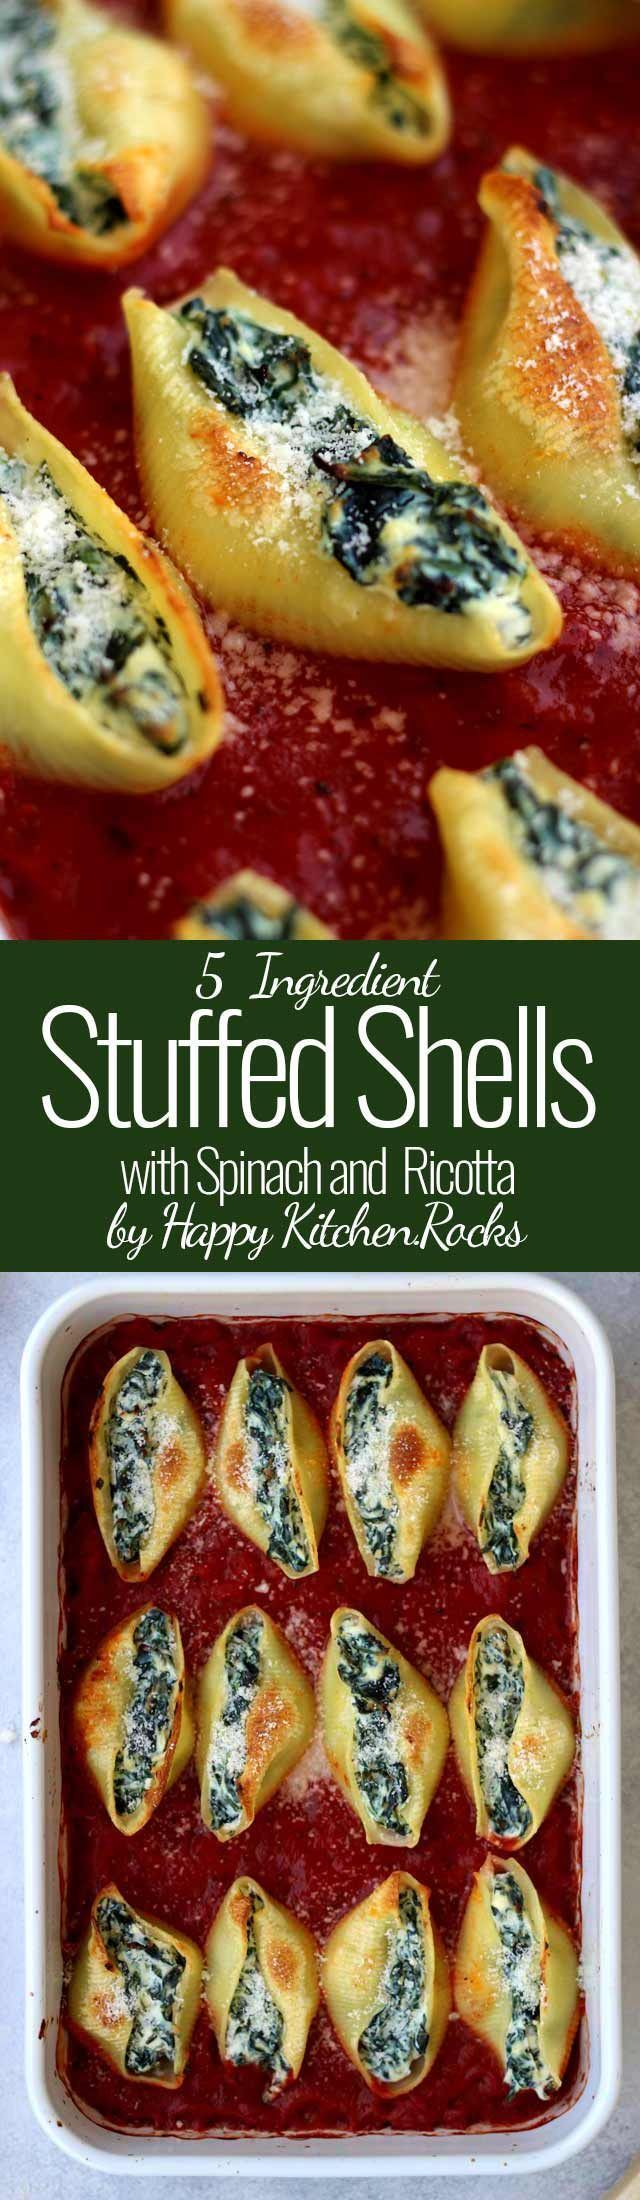 Super Easy 5 ingredient Stuffed Shells recipe with spinach and ricotta will take you no more than 30 minutes to make. Delicious, healthy, comforting and wholesome vegetarian pasta dinner you whole family will enjoy! #pasta #vegetarian #pastadinner #stuffedshells #healthydinner #marinara #spinach #ricotta #5ingredients #organic #recipe #recipes #food #easyrecipe #simplerecipe #comfortfood #healthyfood #healthyrecipe #dinner #simplerecipe #quickdinner #casserole